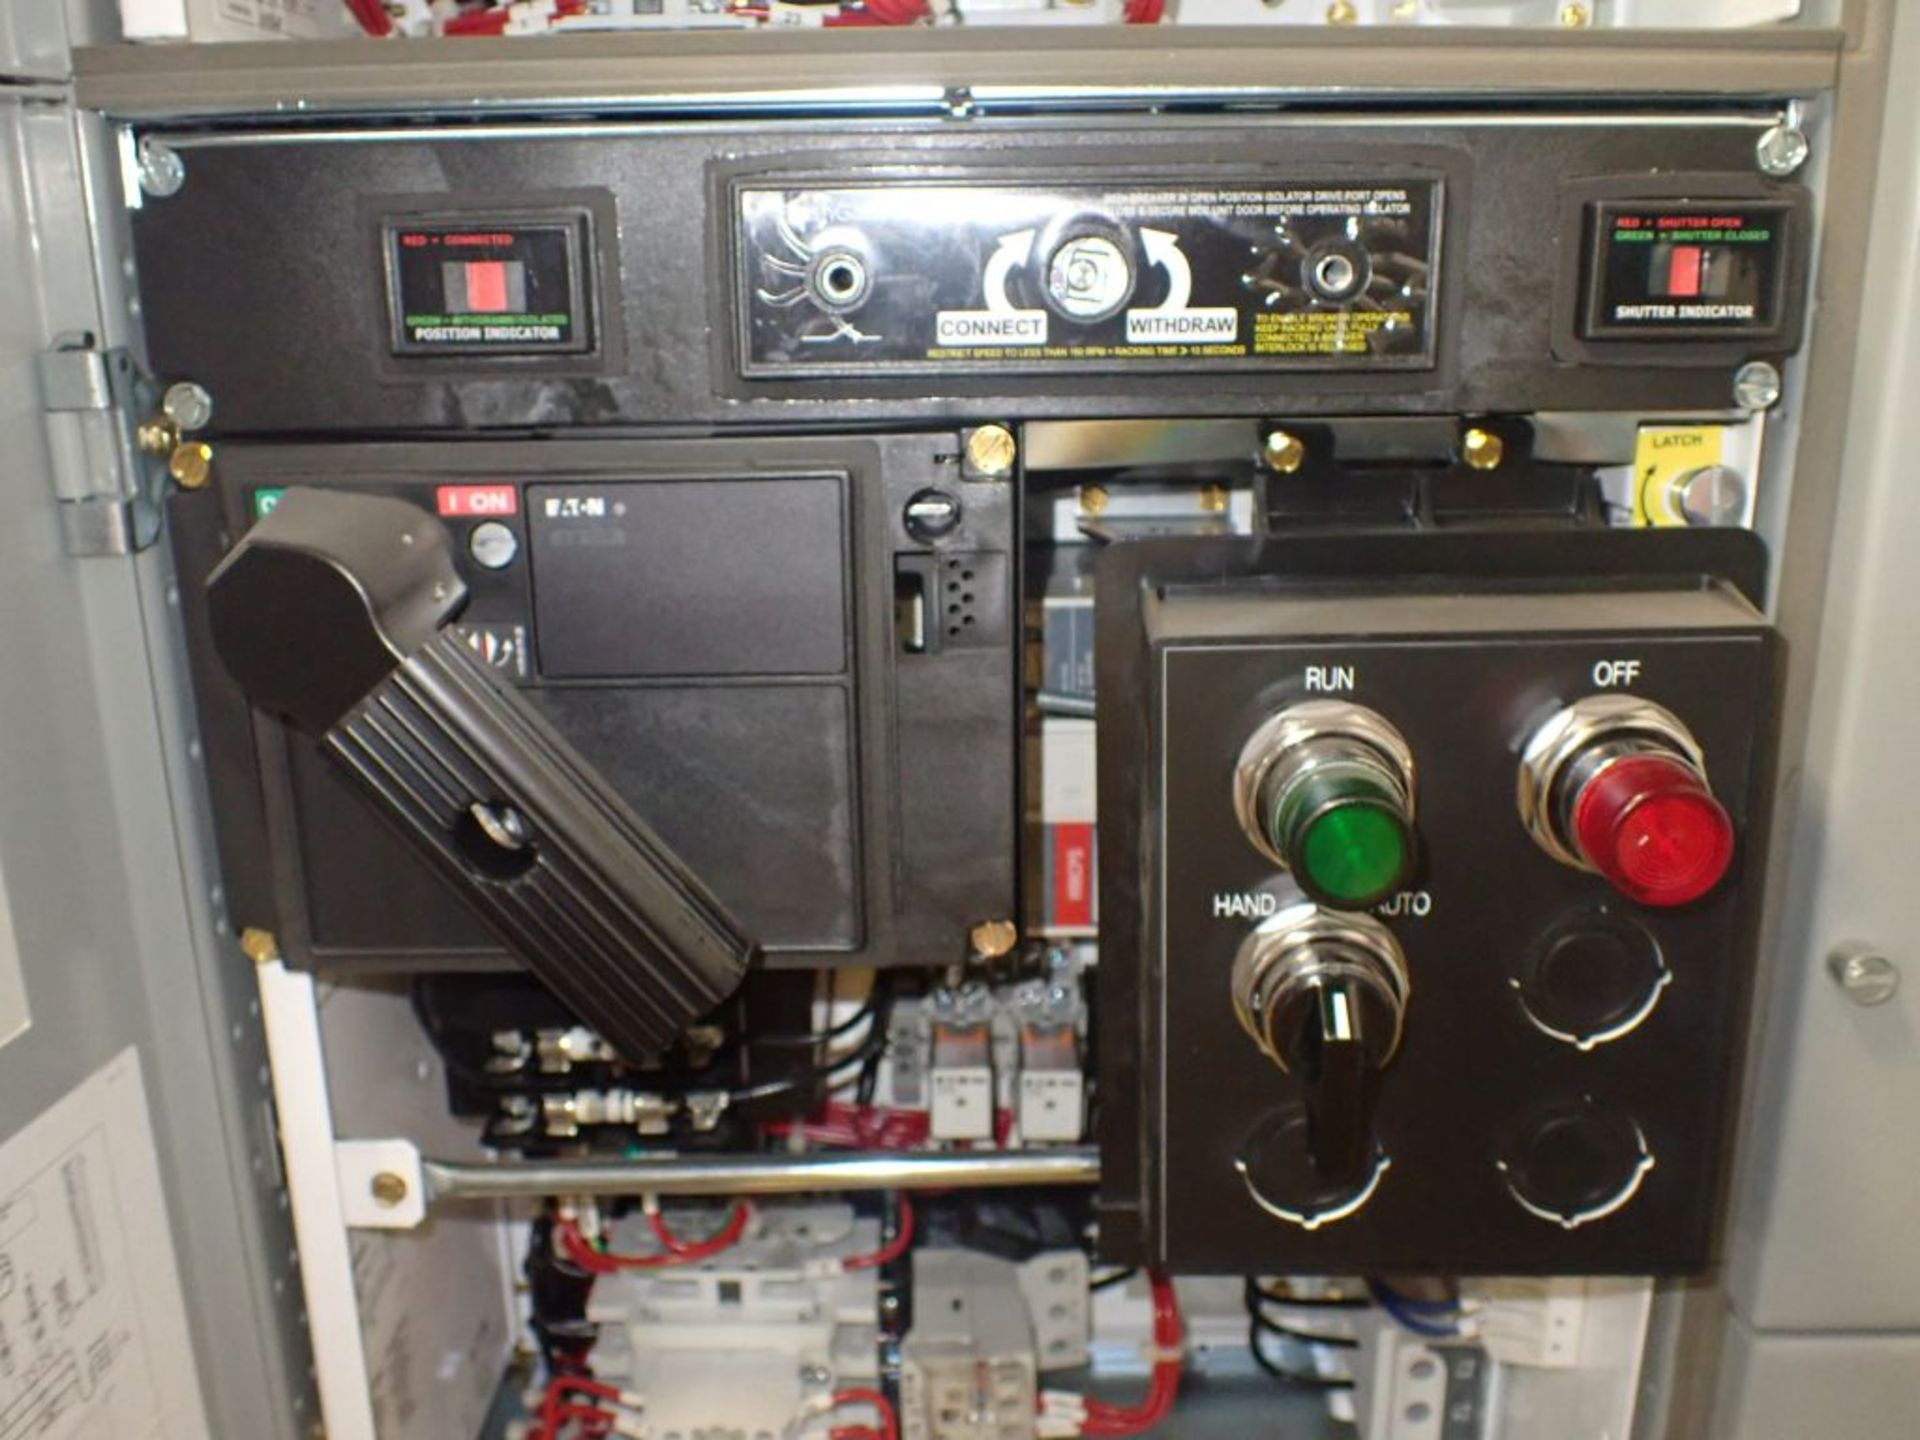 Eaton Freedom 2100 Series Motor Control Center | (2) F206-7A-10HP; (3) F206-15A-10HP; (1) FDRB-100A; - Image 78 of 87